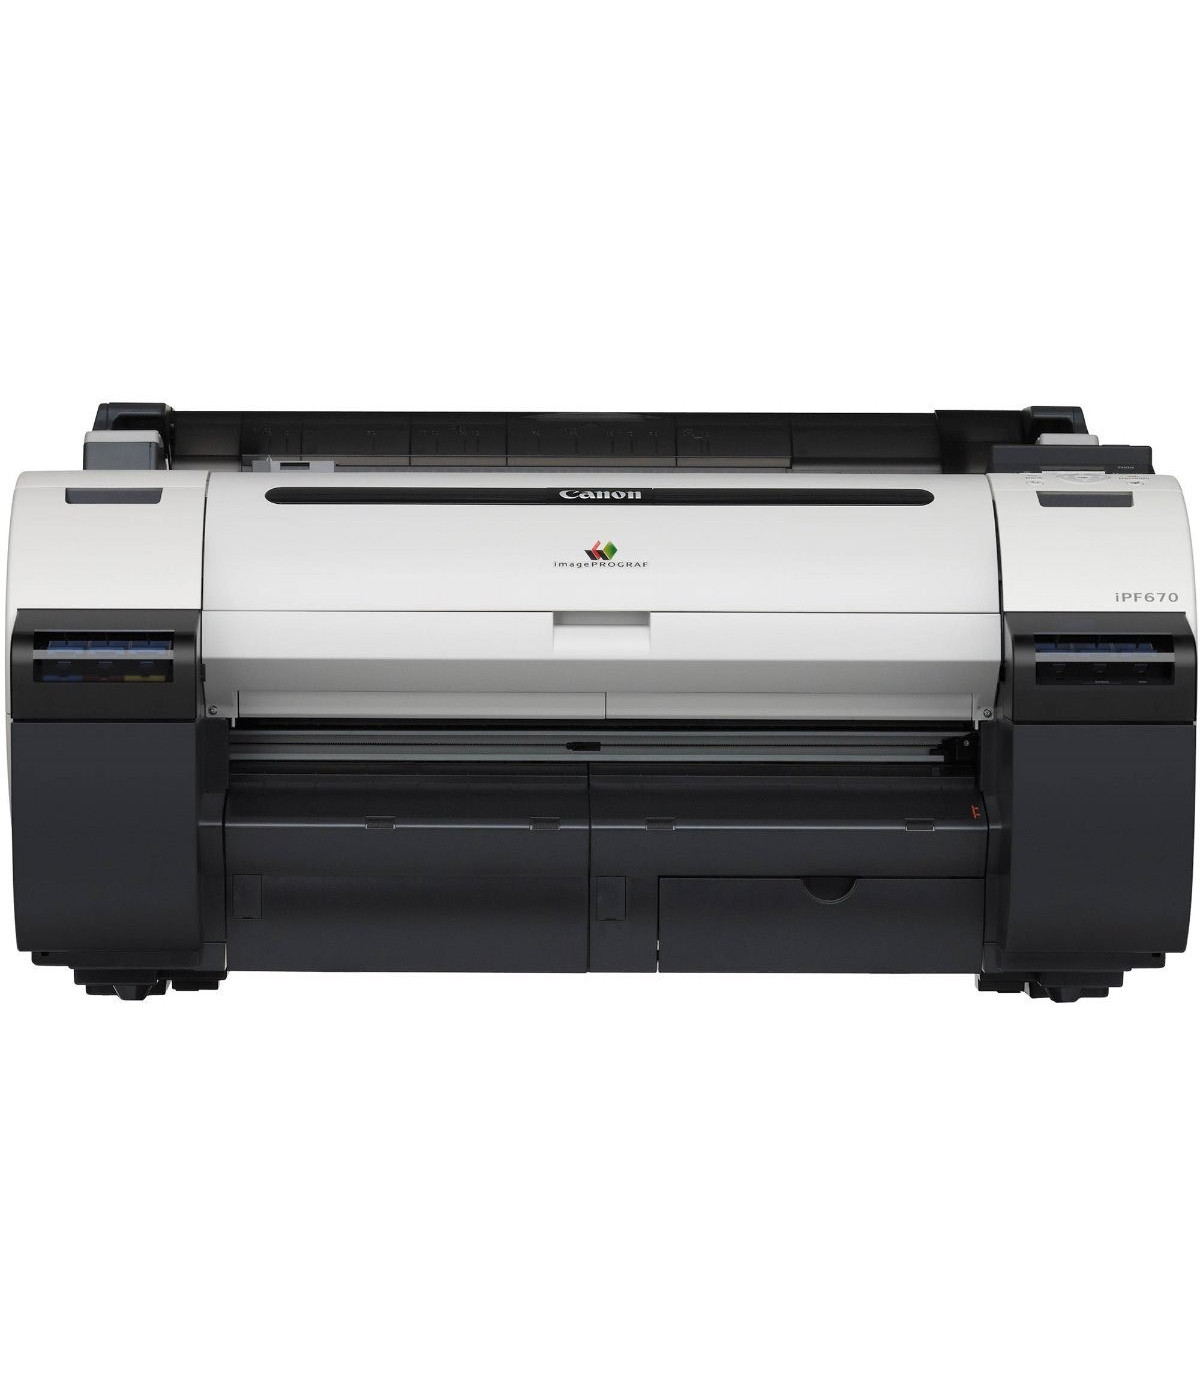 CANON IPF670 WINDOWS 8 DRIVERS DOWNLOAD (2019)